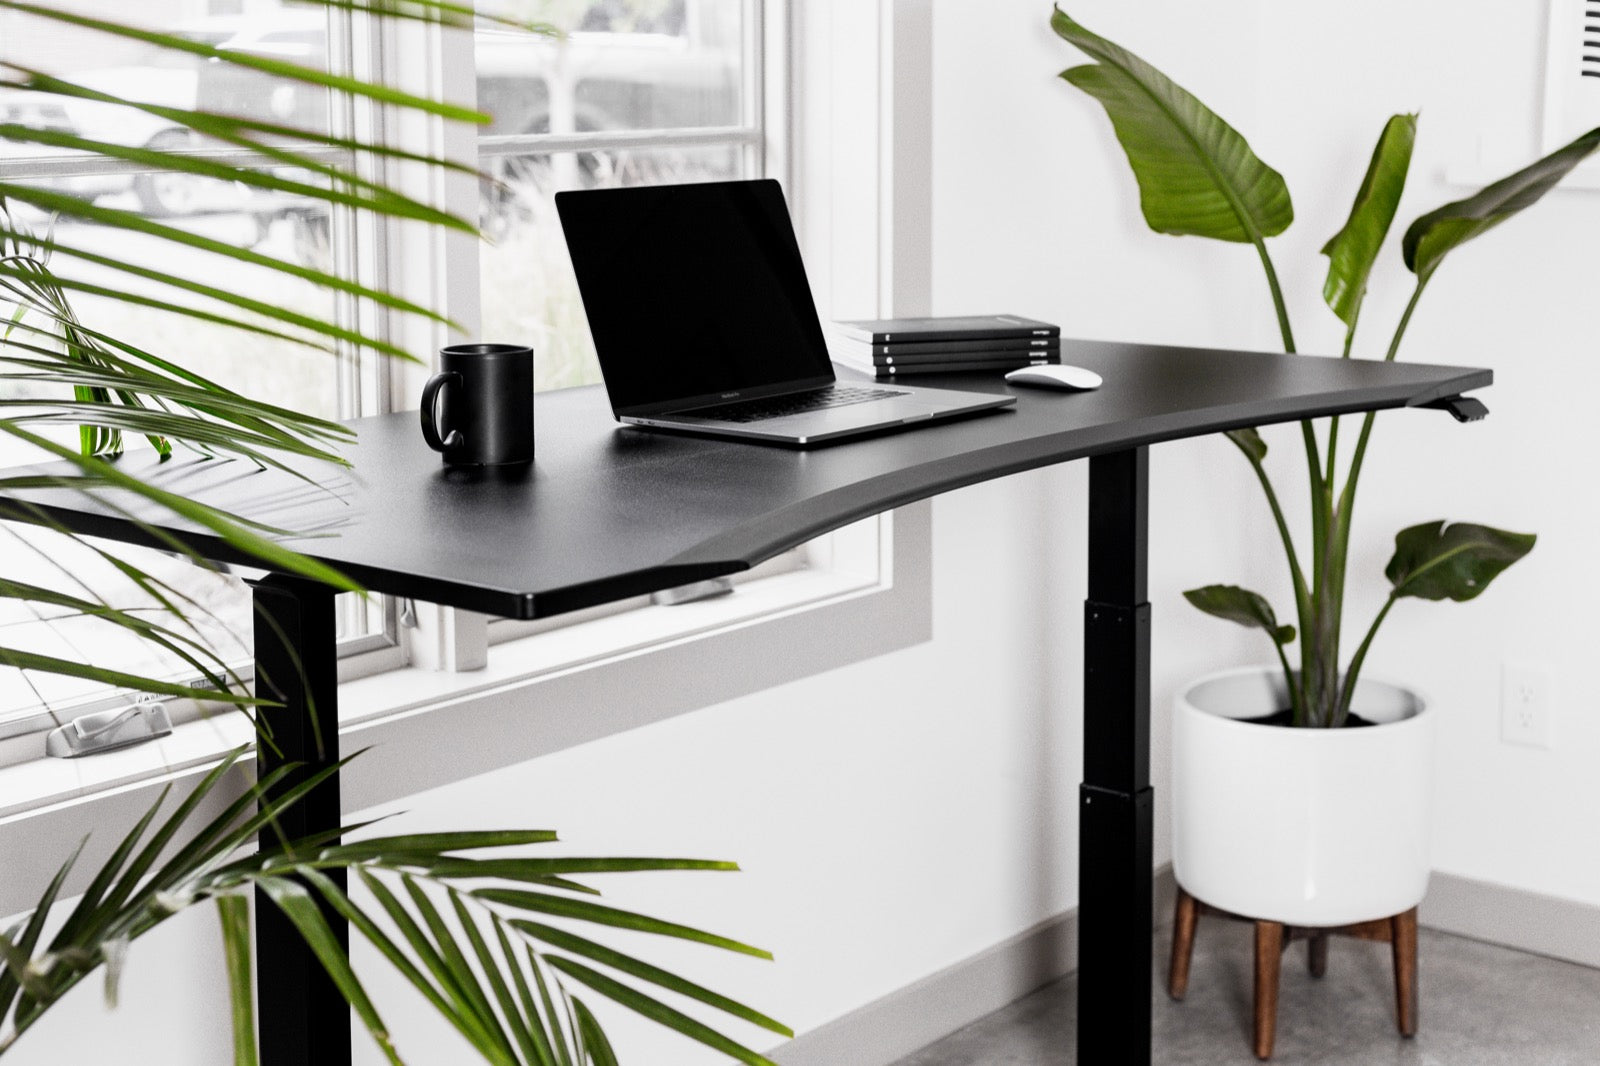 UPDESK Pro Commercial-Grade Electric Adjustable Standing Desk